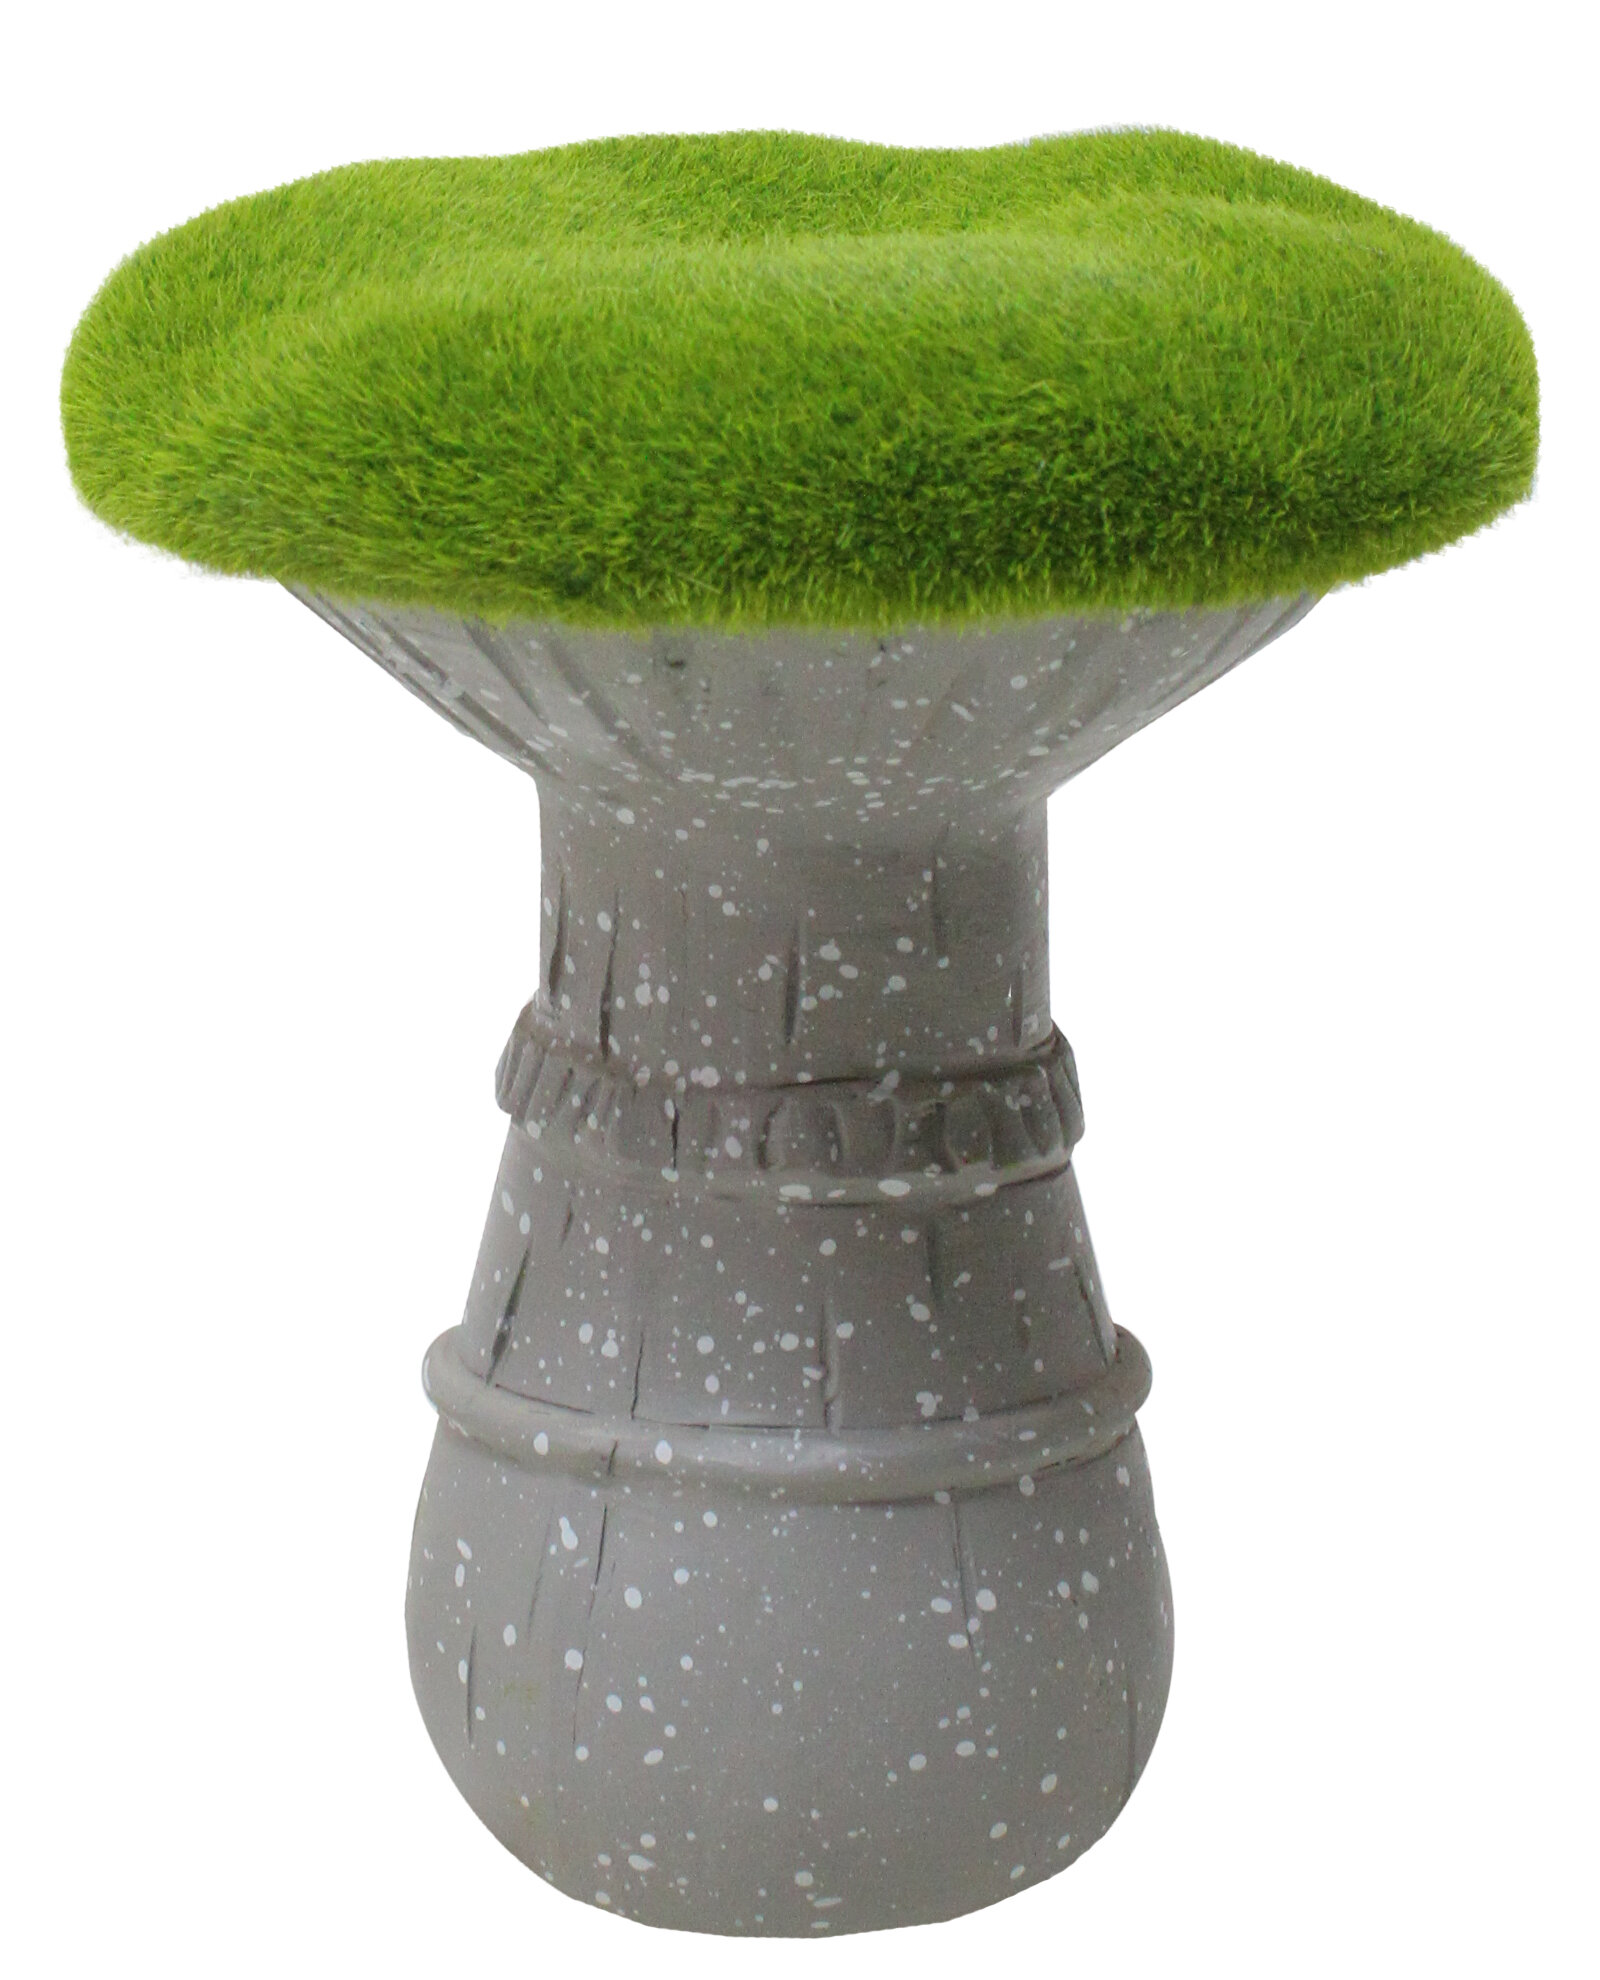 Brilliant Pitcock Artificial Moss Covered Mushroom Outdoor Garden Statue Pabps2019 Chair Design Images Pabps2019Com